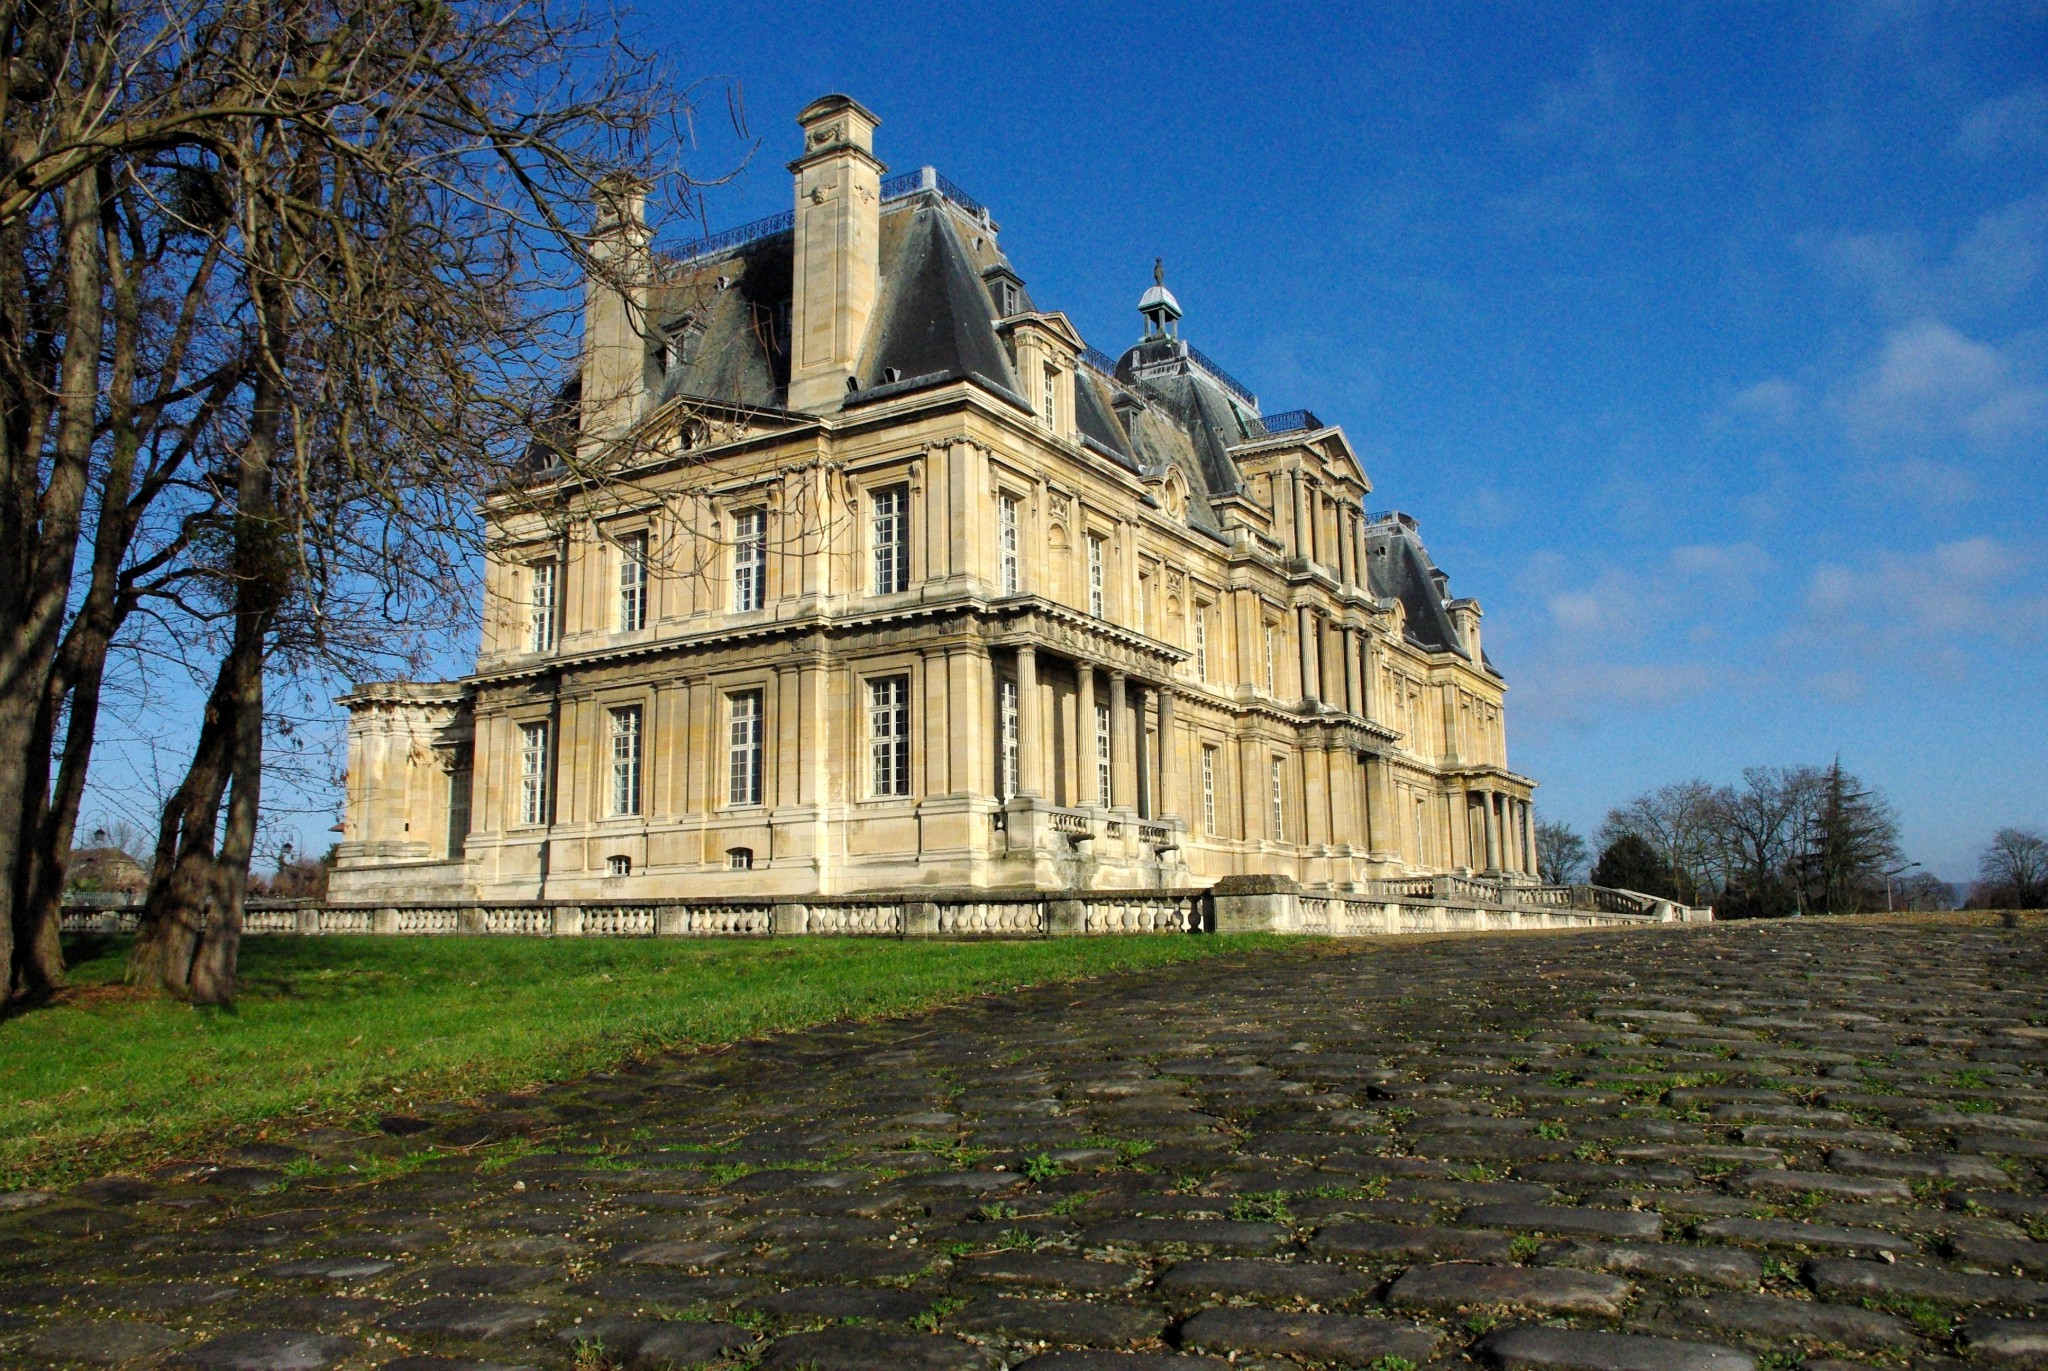 The chateau of Maisons-Laffitte © French Moments